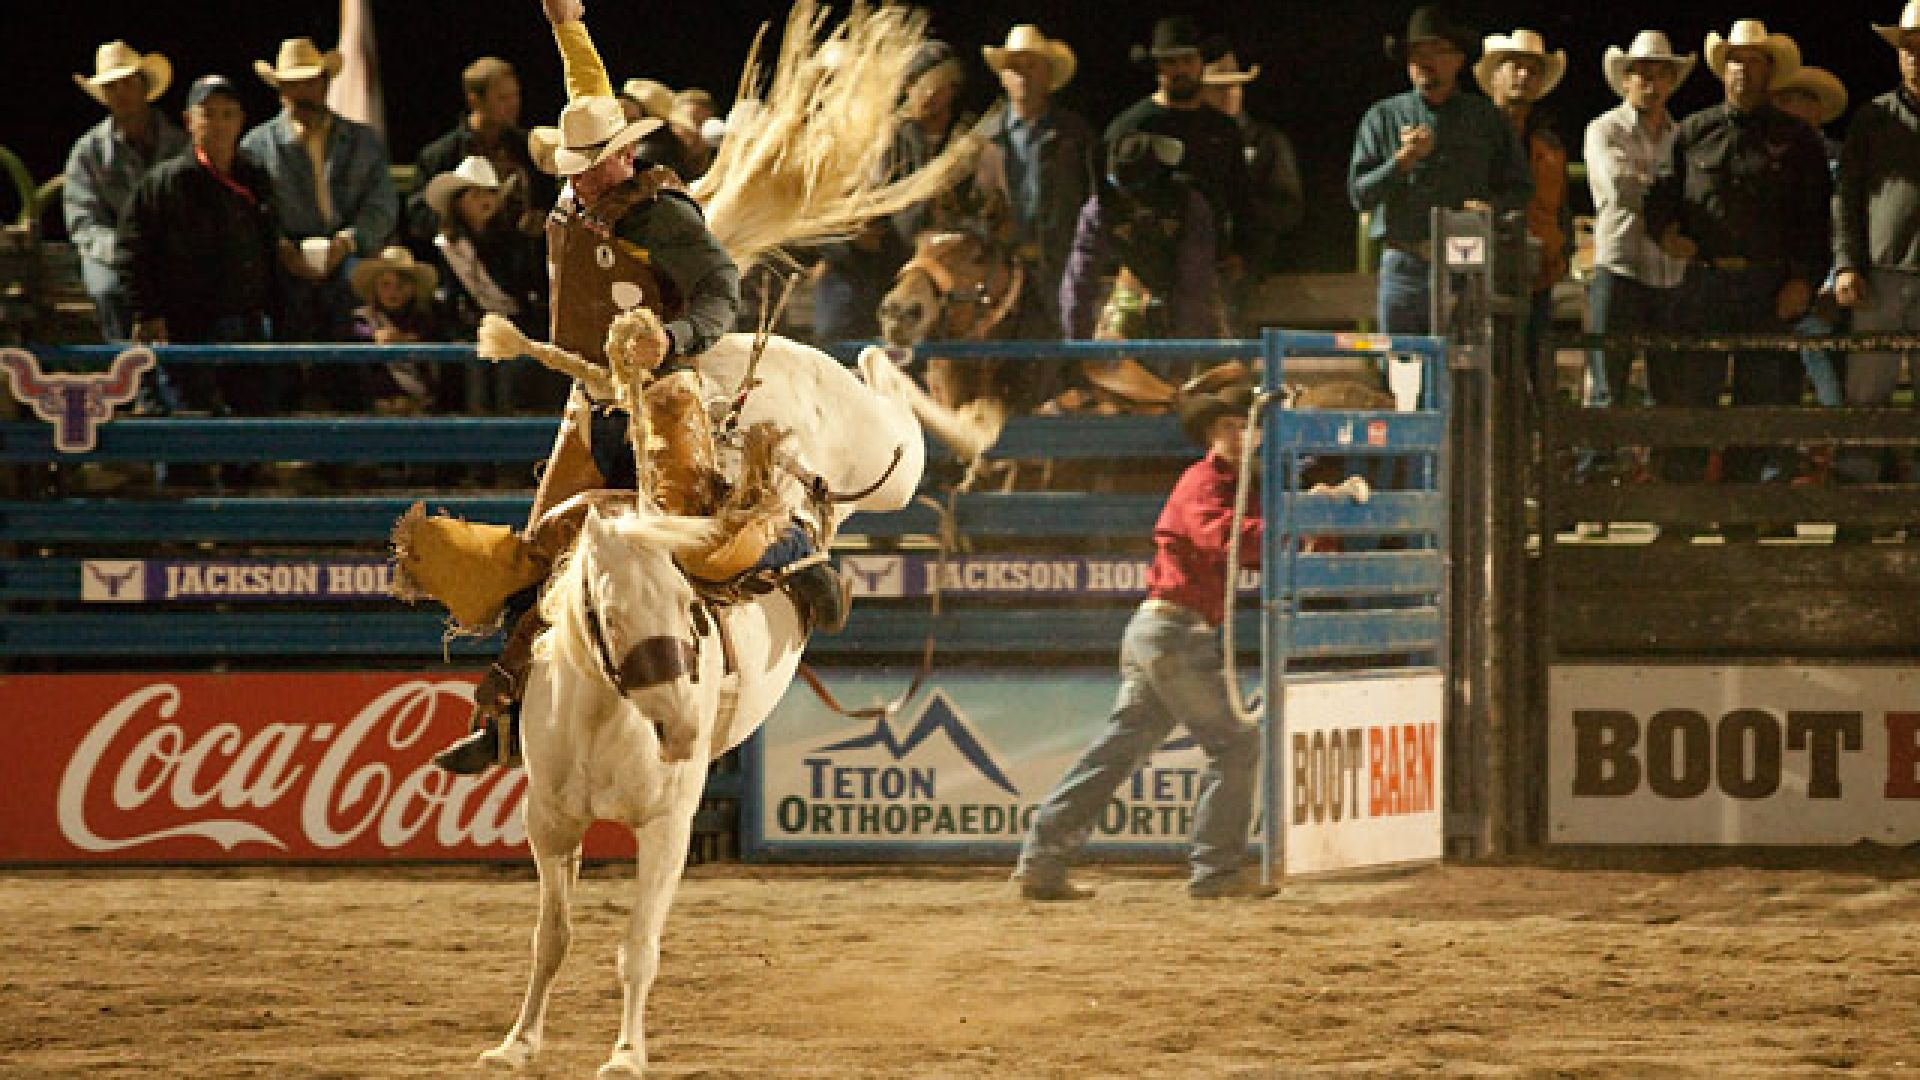 Catch the action twice a week at the Jackson Hole Rodeo in the summer!